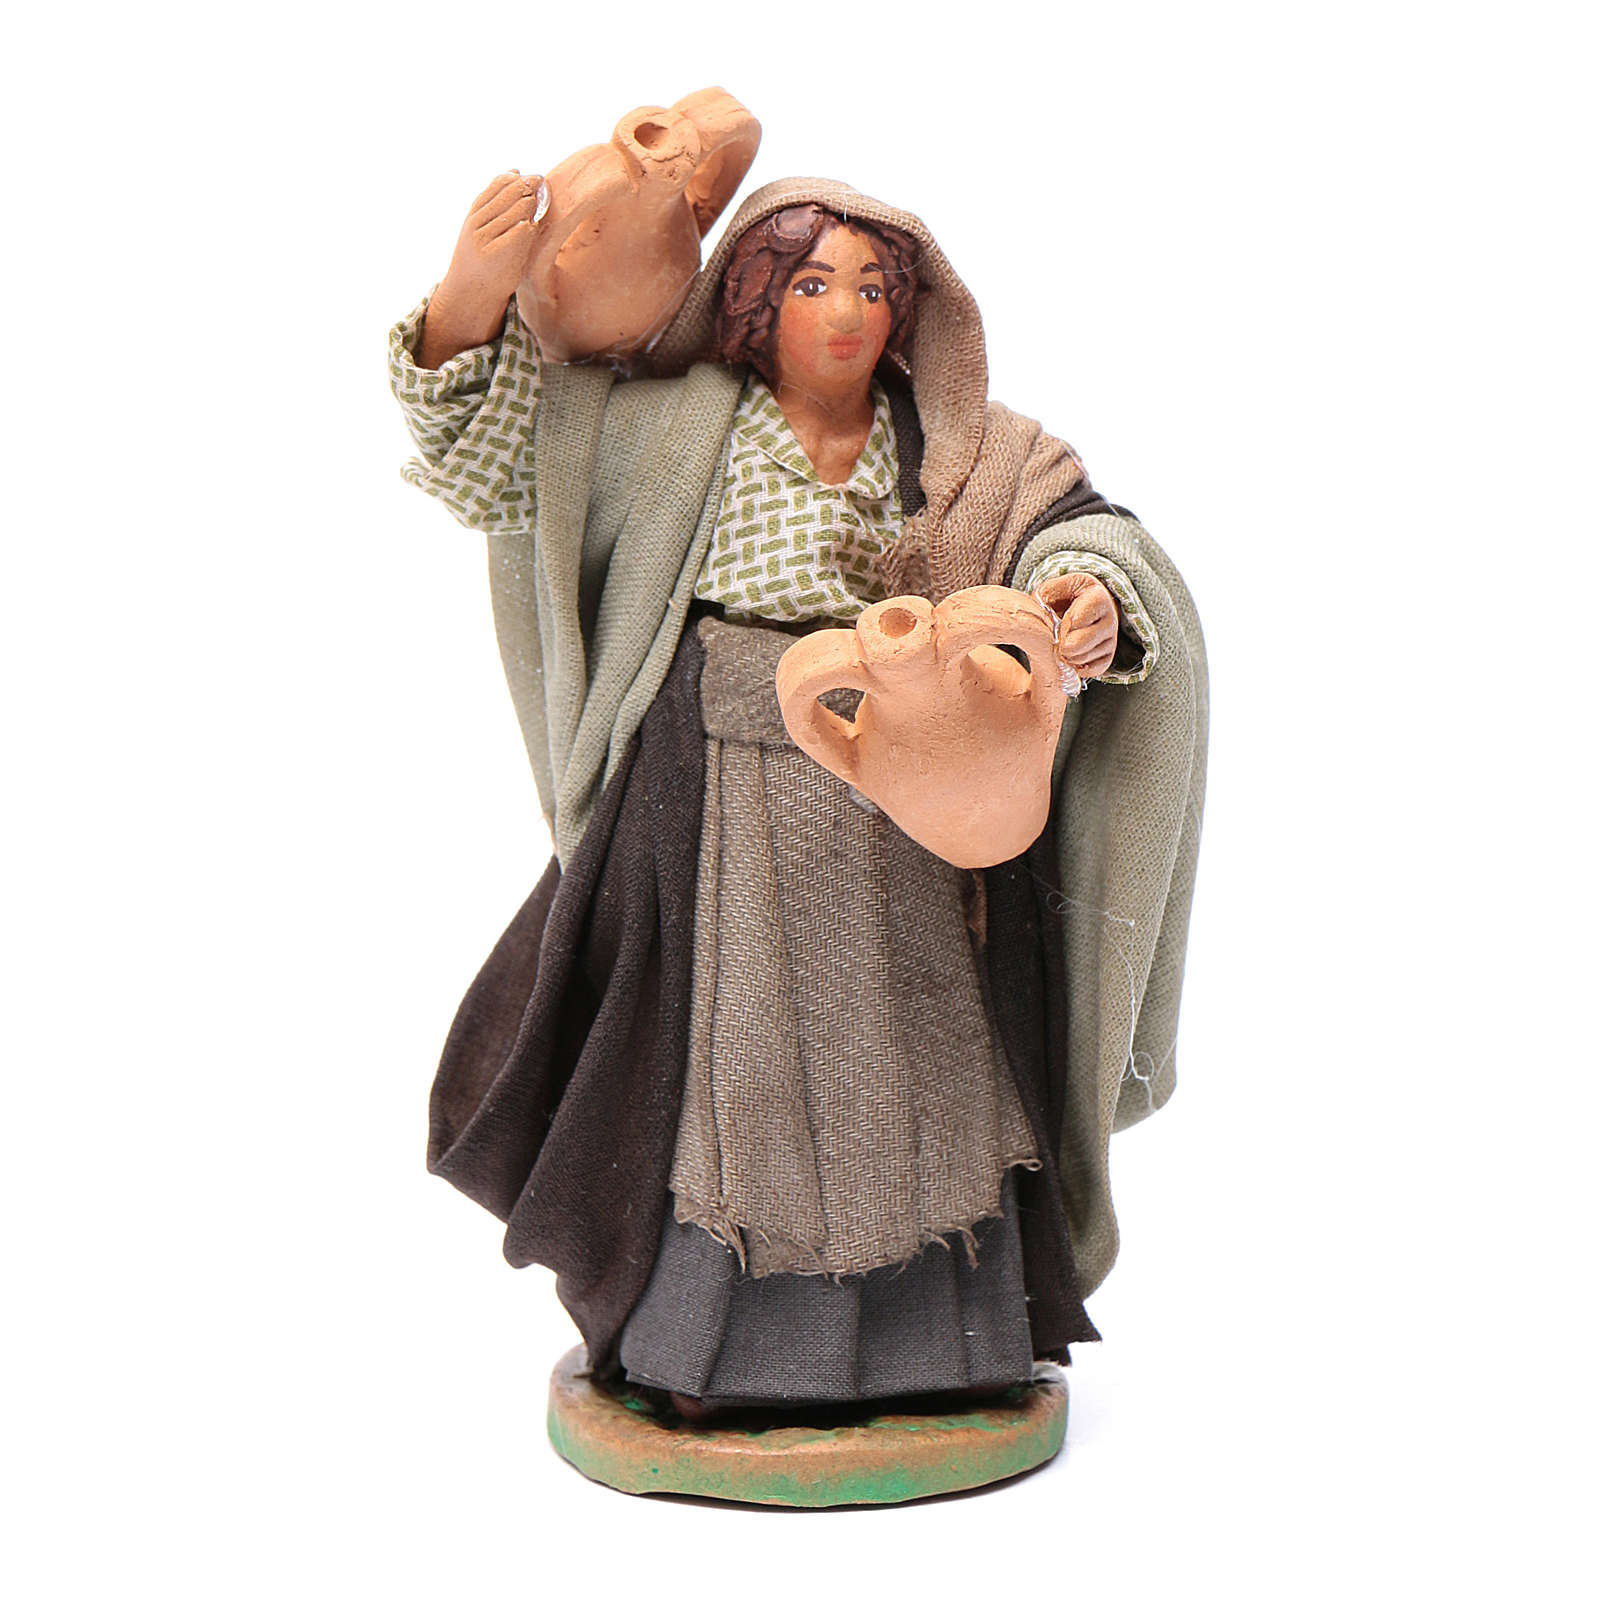 Neapolitan nativity scene statue woman with amphora on her shoulders 10 cm 4